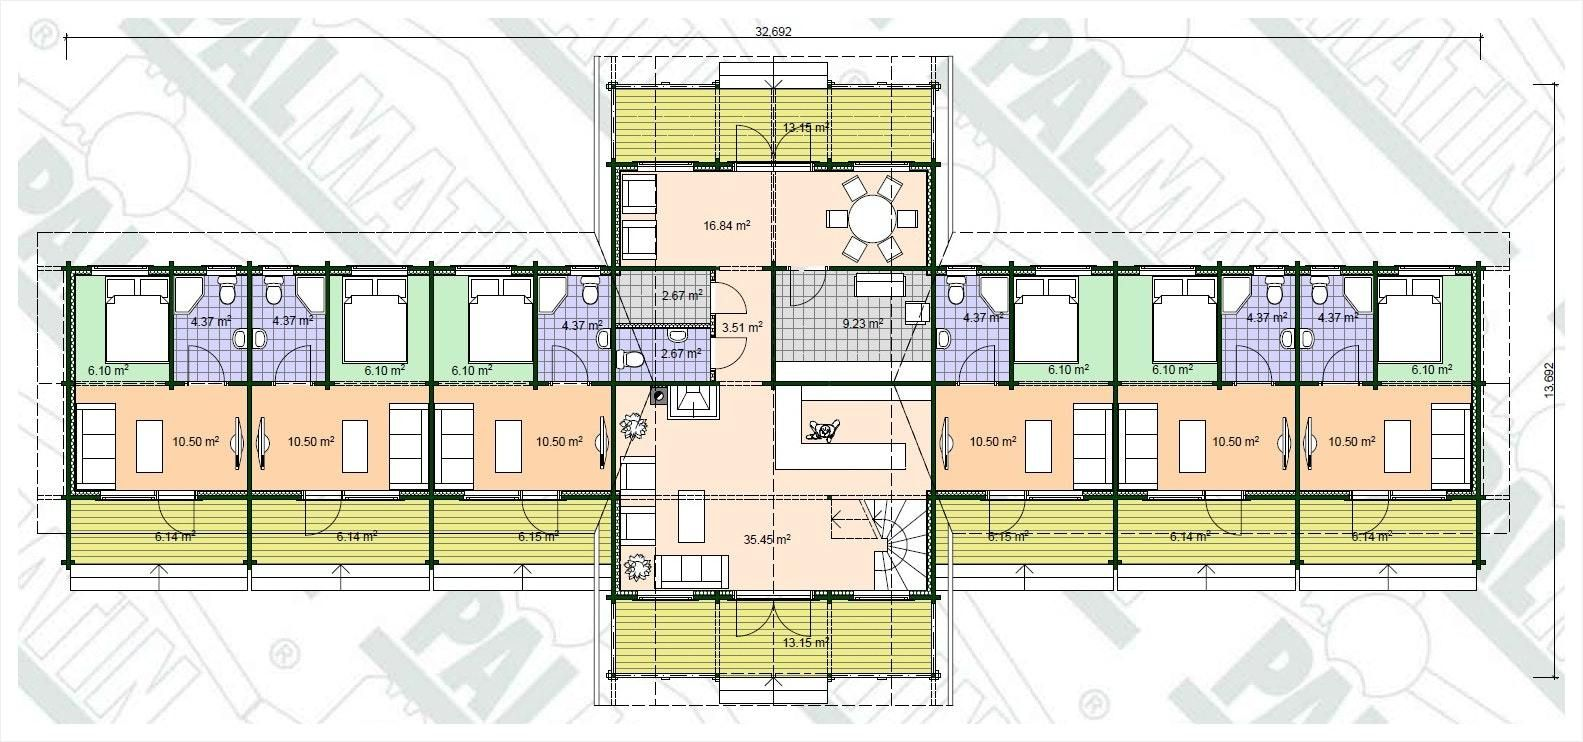 hotel rooms floor plan design - Google Search (With images ...